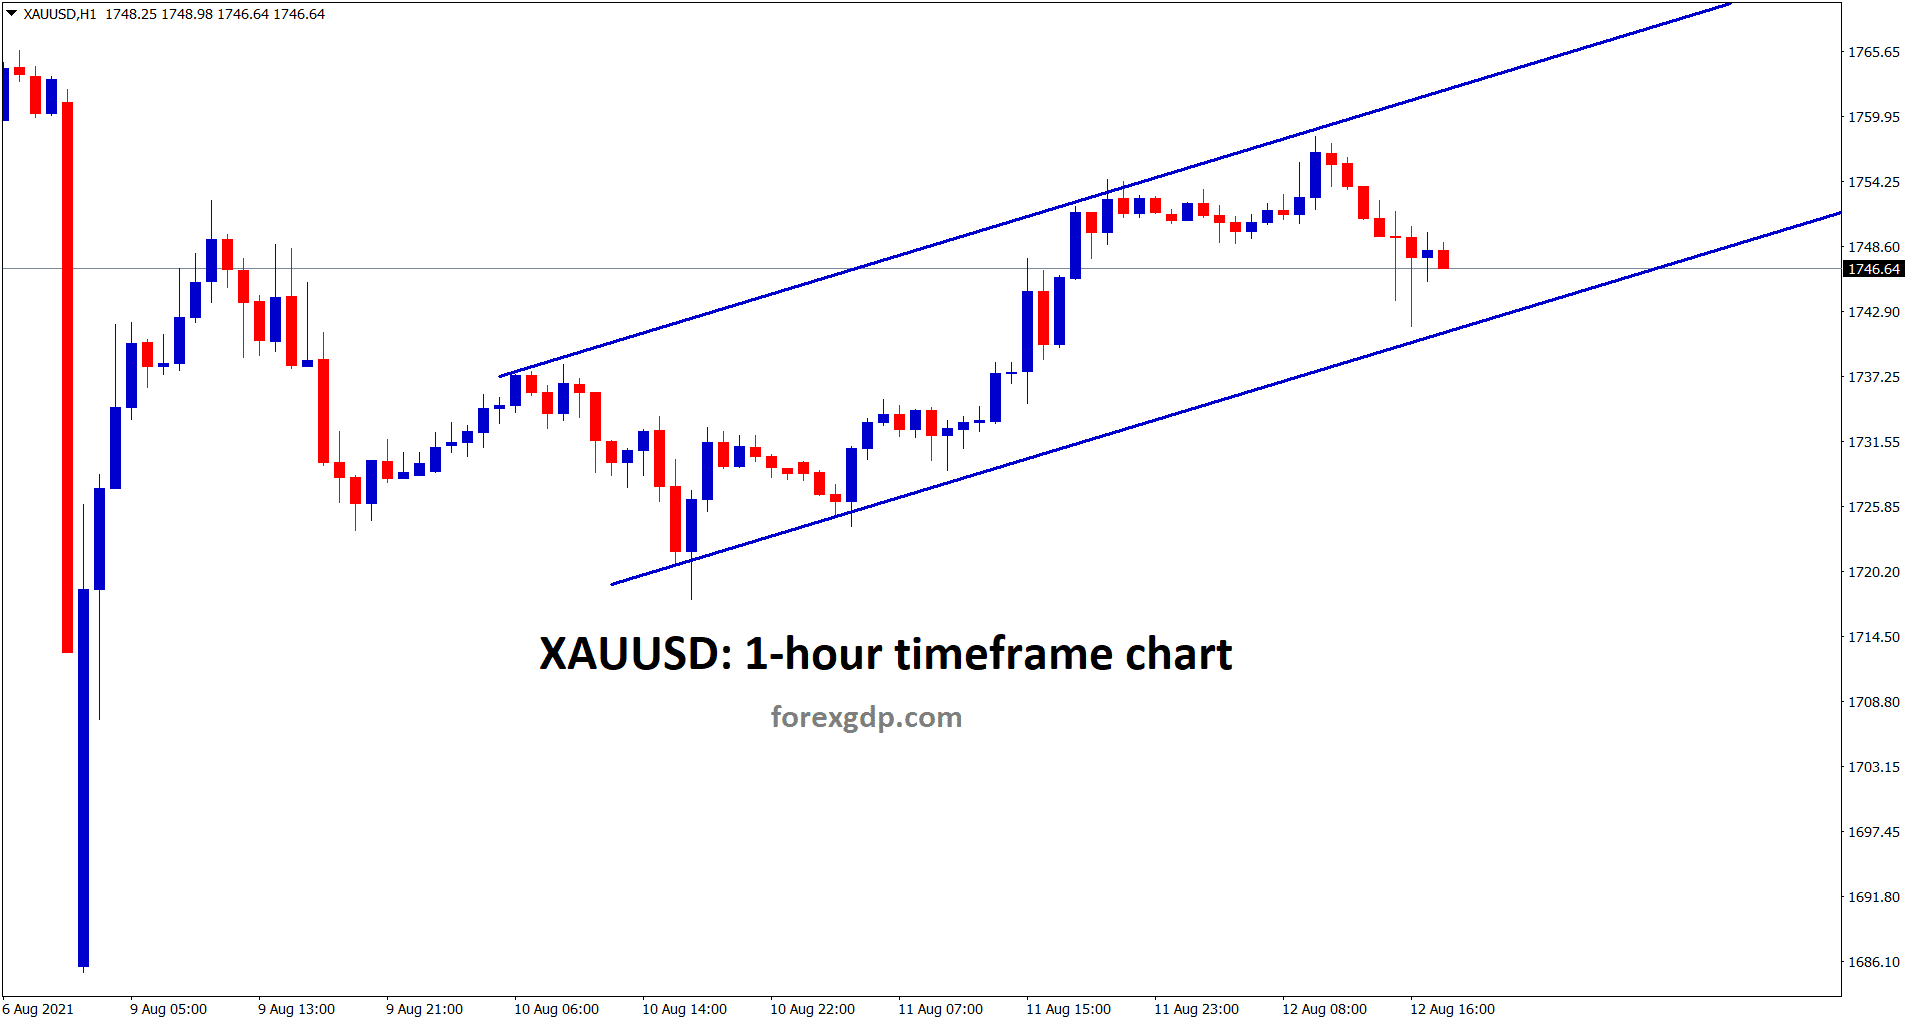 Gold is moving in an uptrend range slowly and it has filled the gap down movement by full retracement.